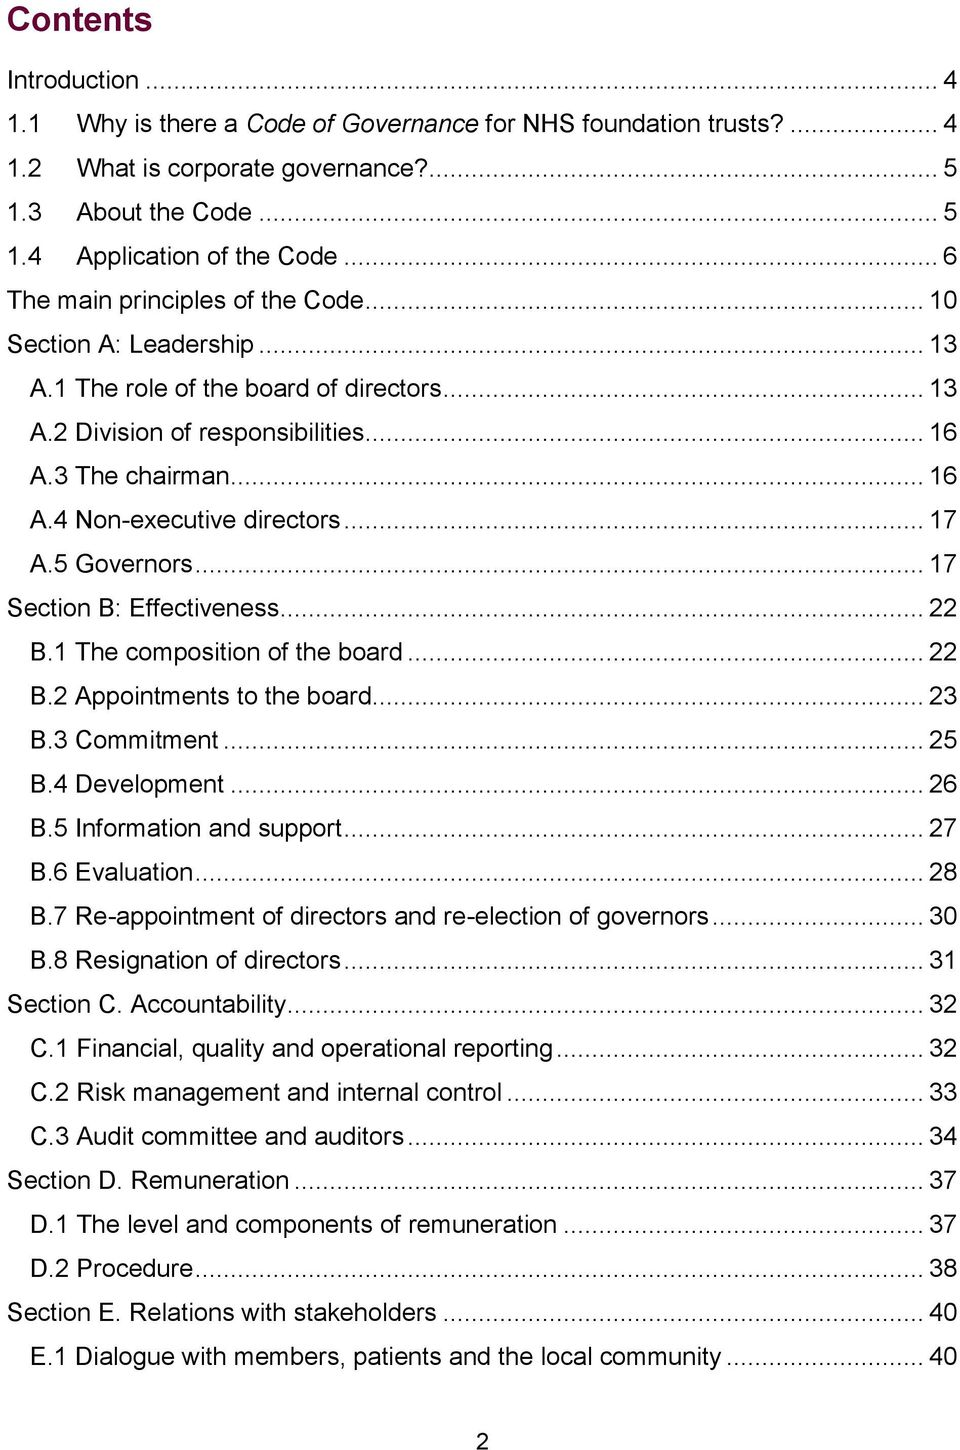 .. 17 A.5 Governors... 17 Section B: Effectiveness... 22 B.1 The composition of the board... 22 B.2 Appointments to the board... 23 B.3 Commitment... 25 B.4 Development... 26 B.